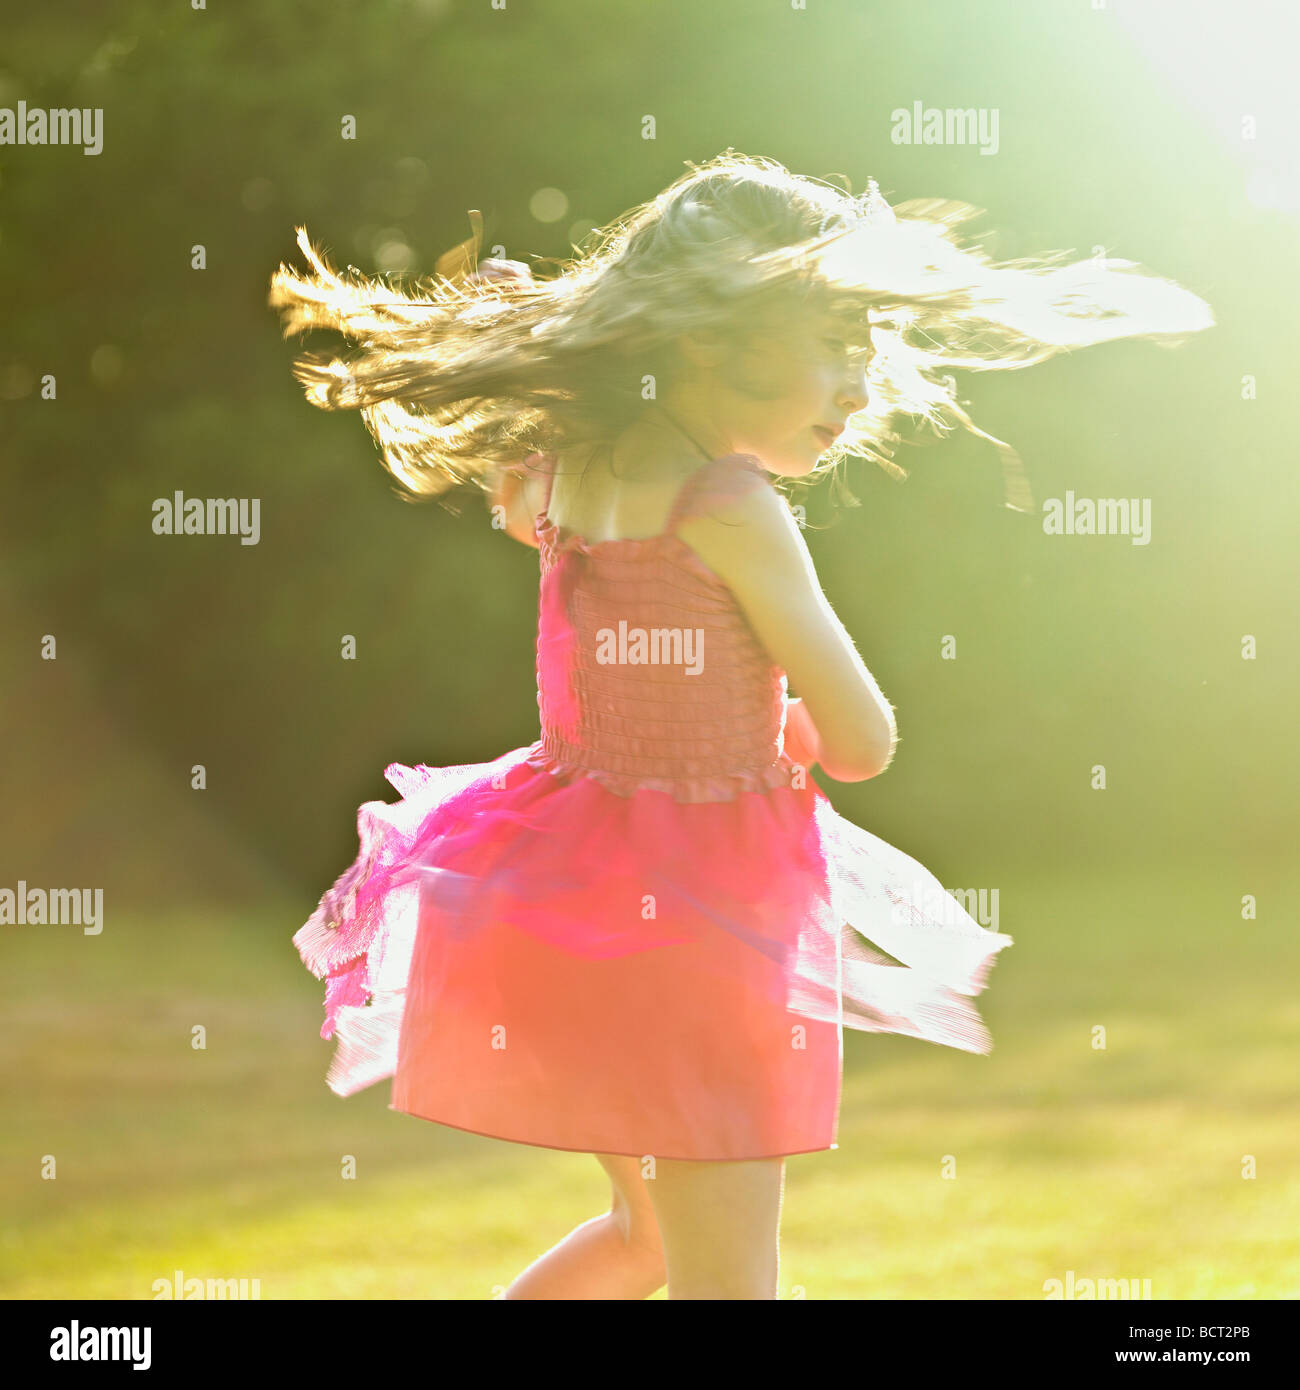 Young girl in a pink dress dancing in the garden summer sun. - Stock Image